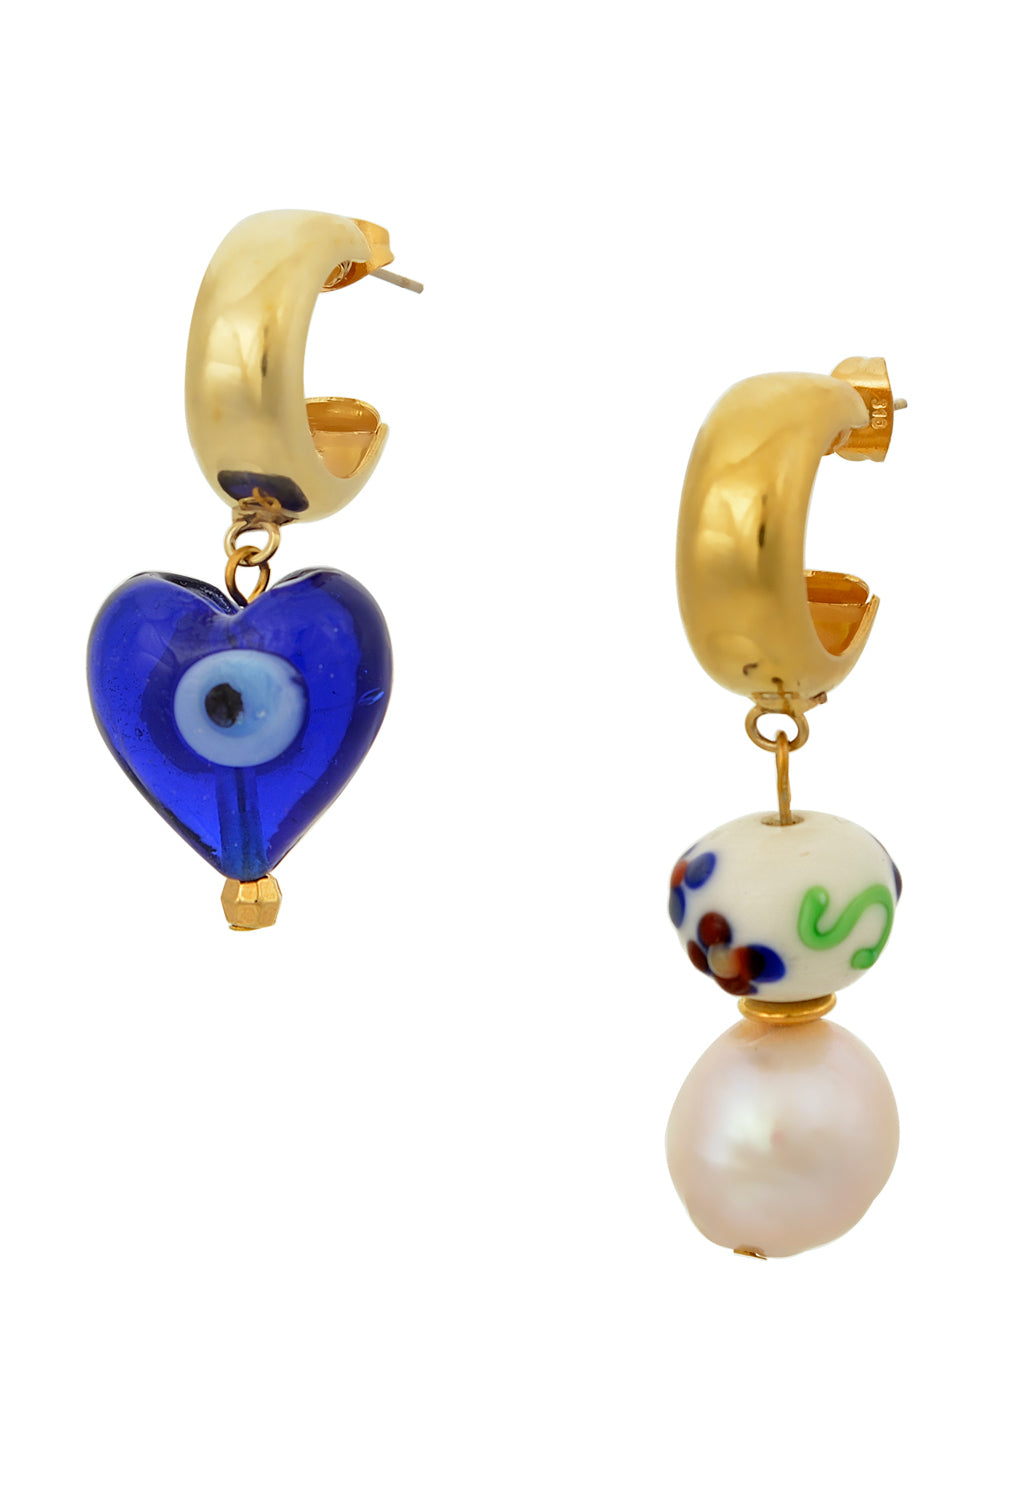 Asymmetrical gold Mayol earrings, one with blue eye Murano heart drop & the other with stacked porcelain bead and pearl drop